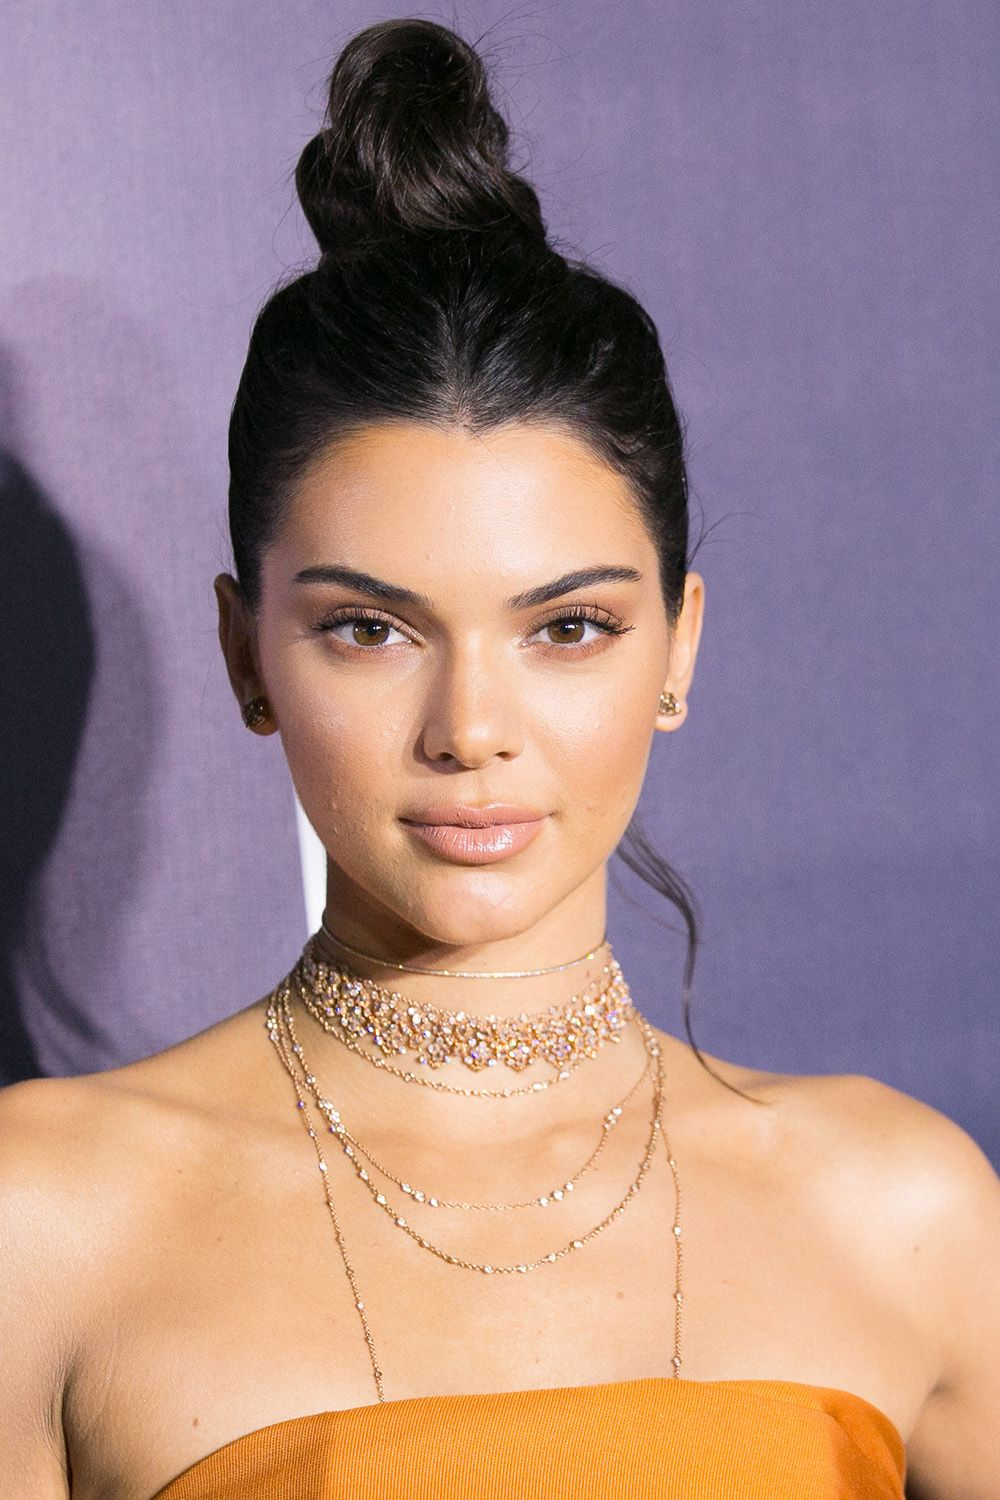 Kendall Jenner Bares It All Almost In A Sheer Blouse In Paris